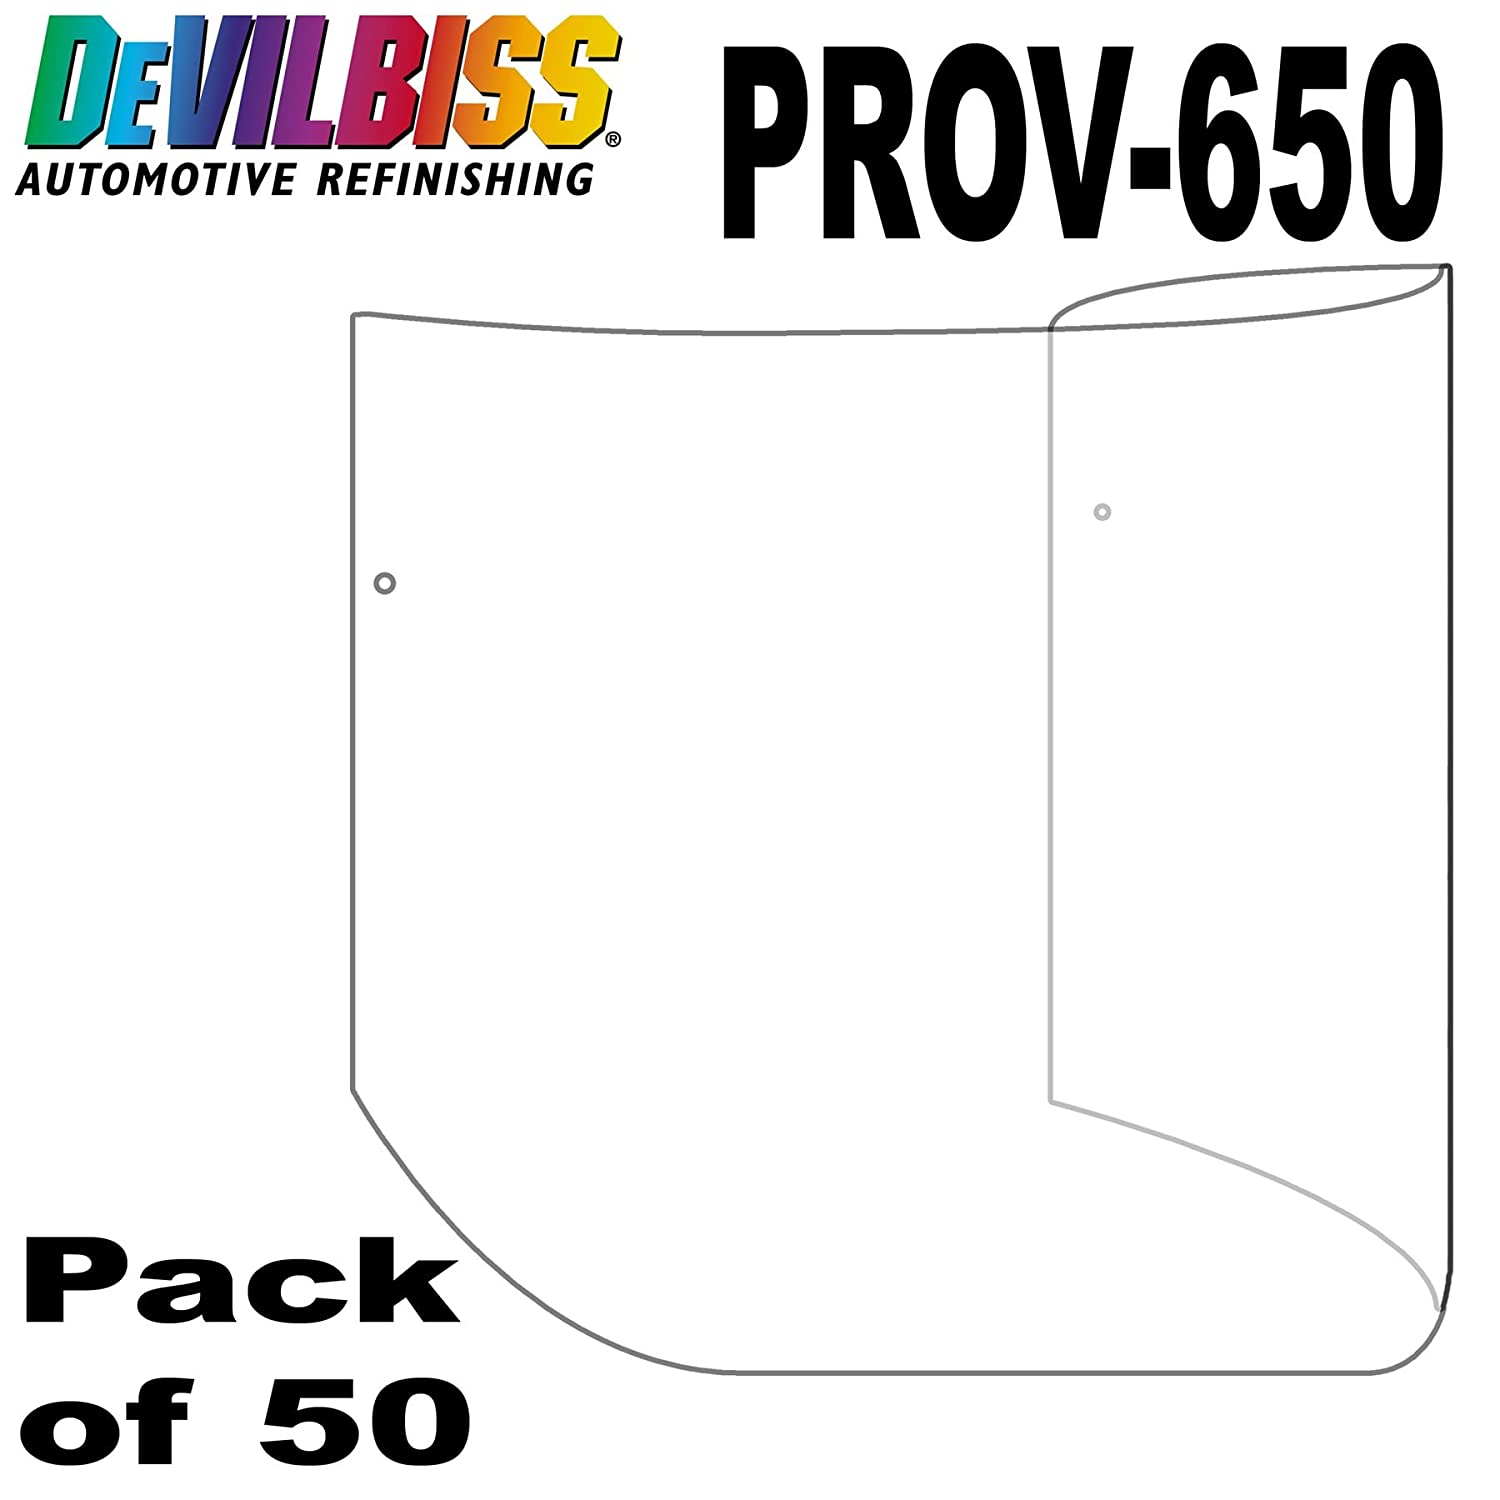 DeVilbiss 10 Pack Official Tear-Off Visor Protectors for the New 2016 DeVilbiss PROV-650 Air Fed Masks Scratch Resistant Covers